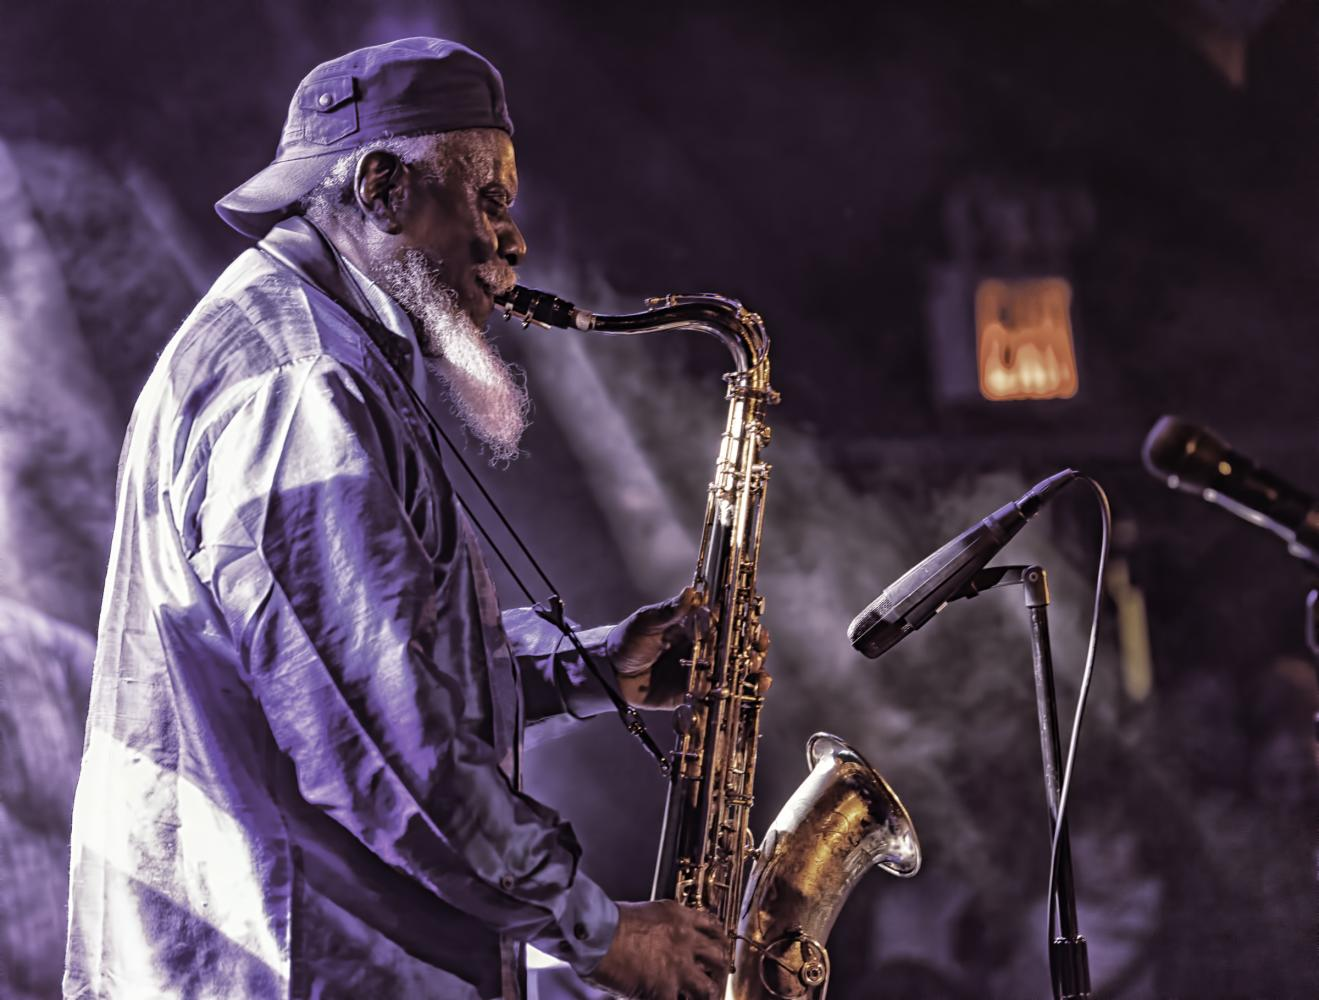 Pharoah Sanders at The NYC Winter Jazzfest 2017